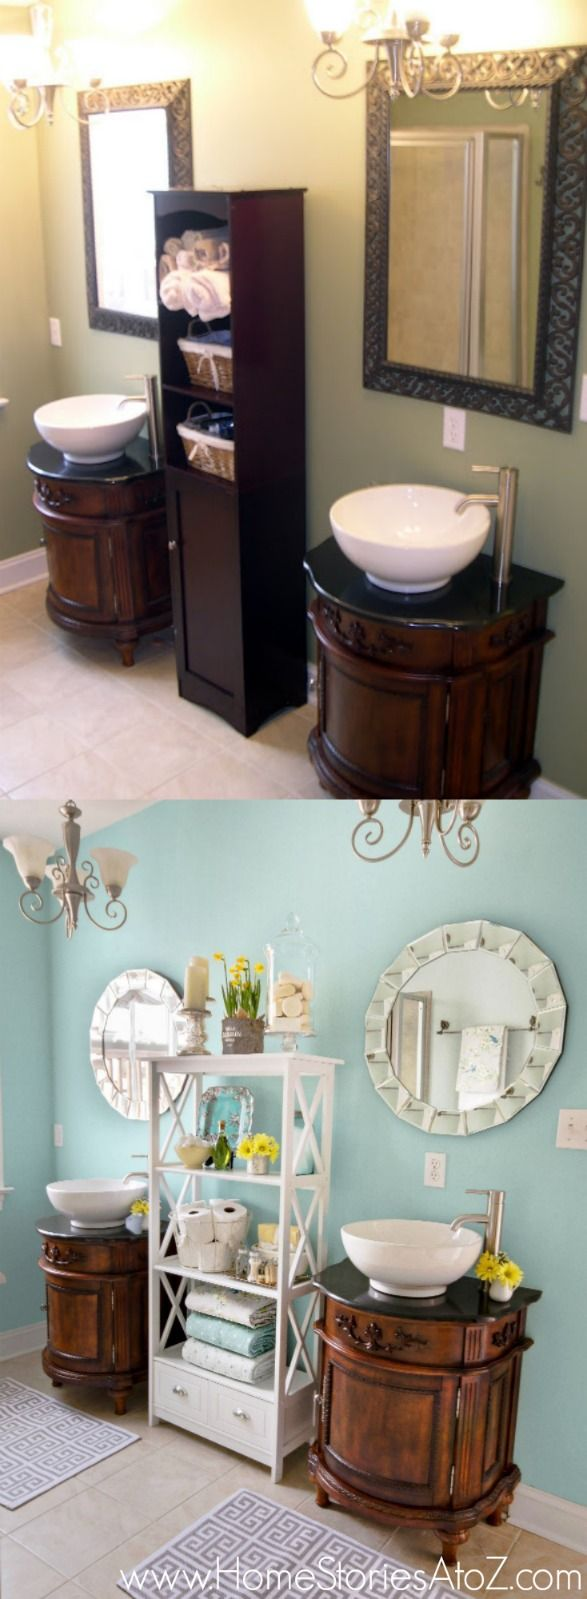 The power of paint. Bathroom makeover in Sherwin-Williams Watery. #swcolor @Beth Hunter @Sherwin-Williams